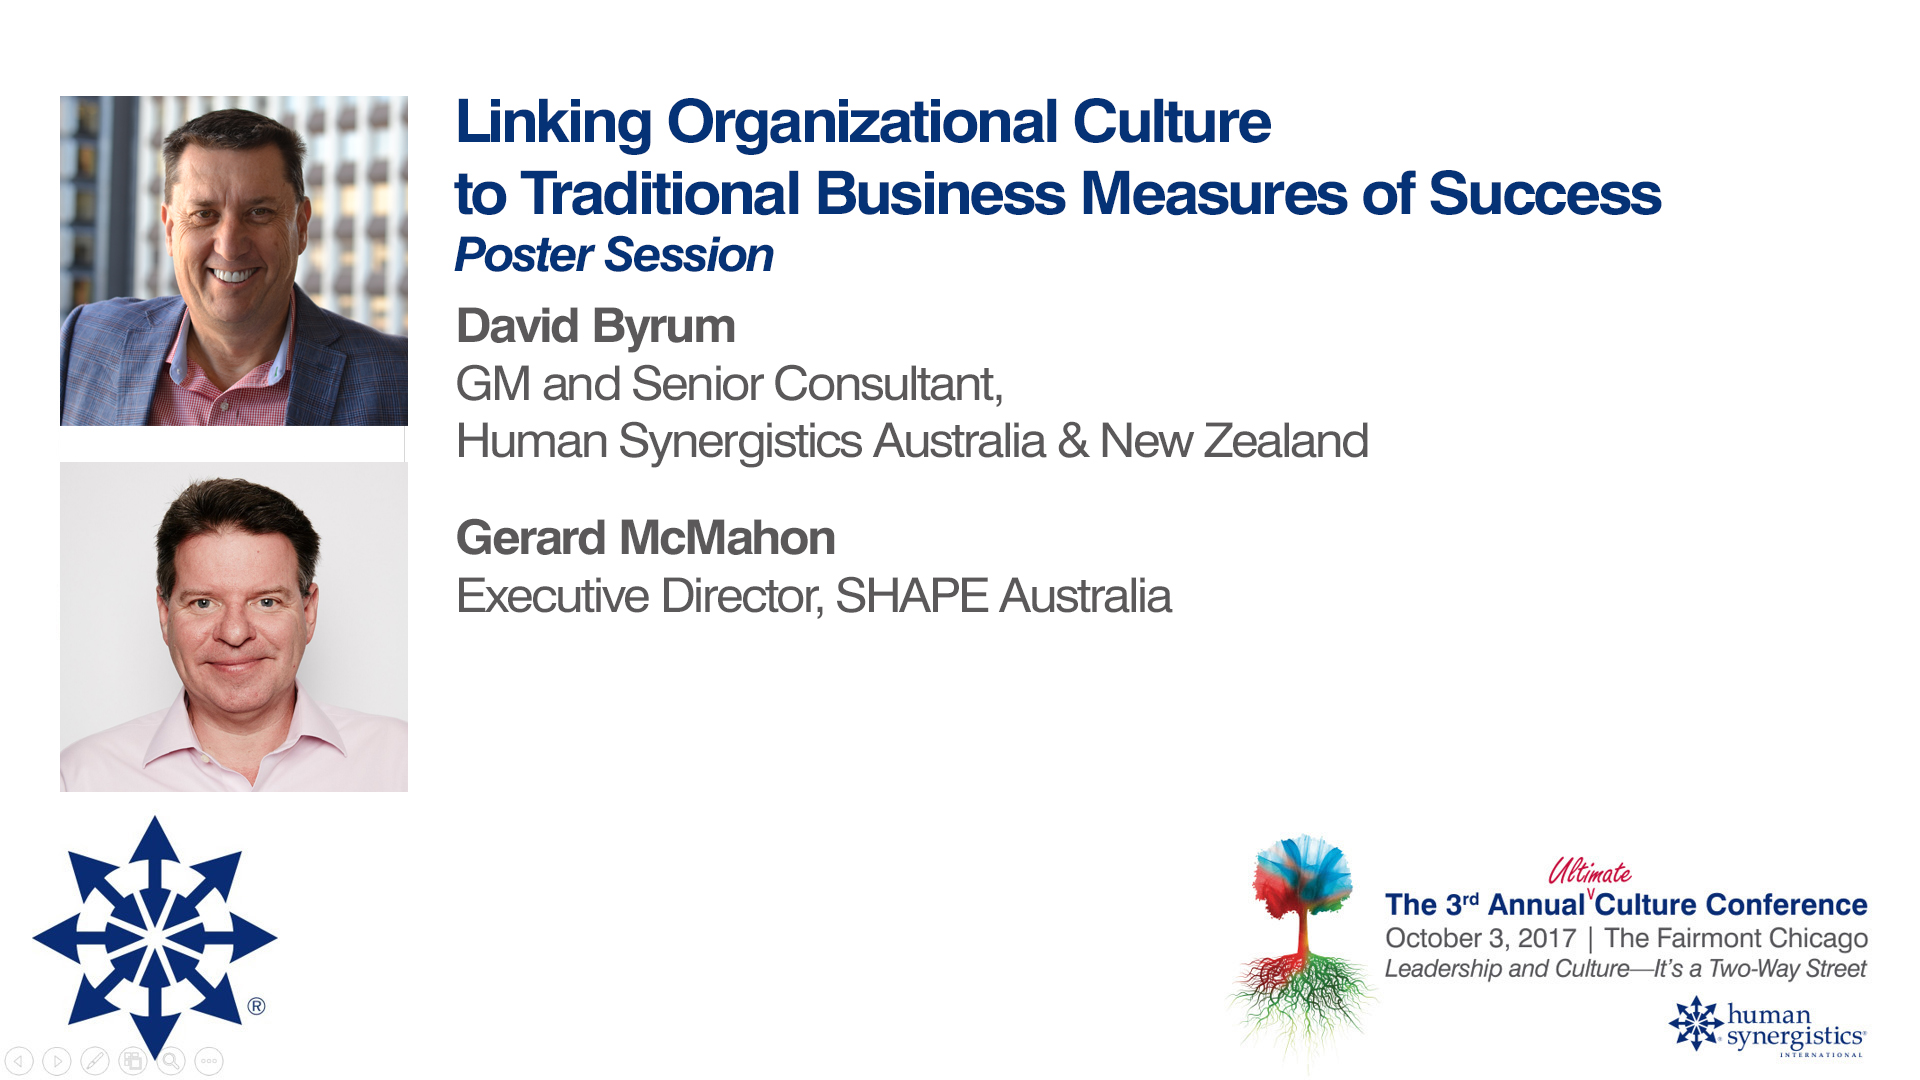 SHAPE and business measures